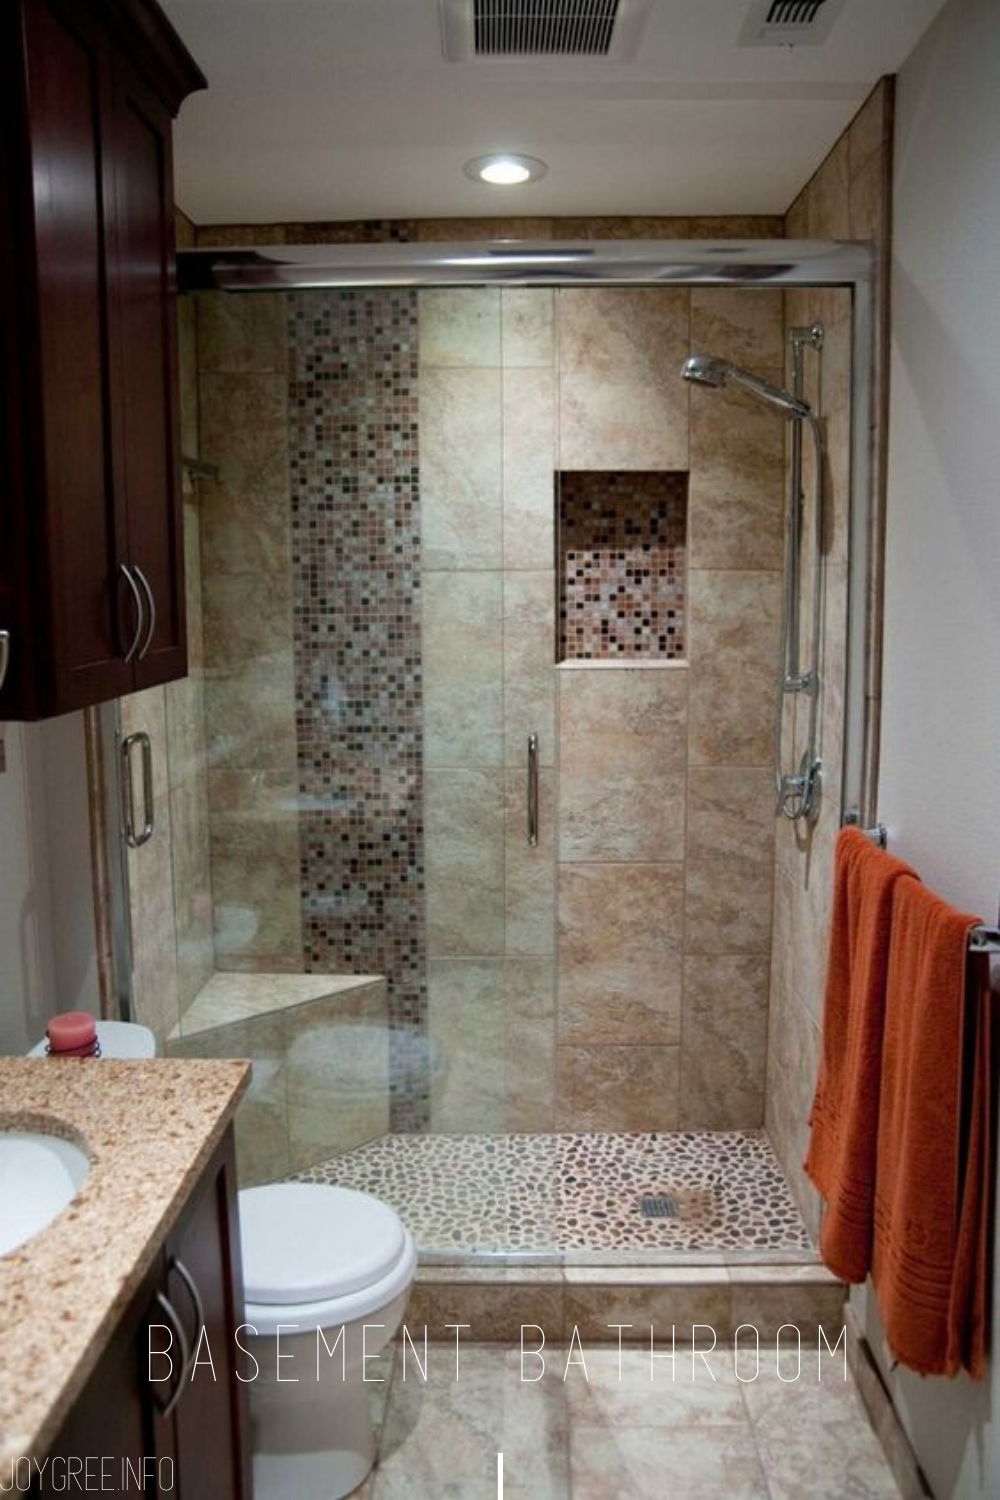 Small Basement Bathroom With Shower Ideas In 2020 Small Bathroom Remodel Diy Bathroom Remodel Basement Bathroom Remodeling